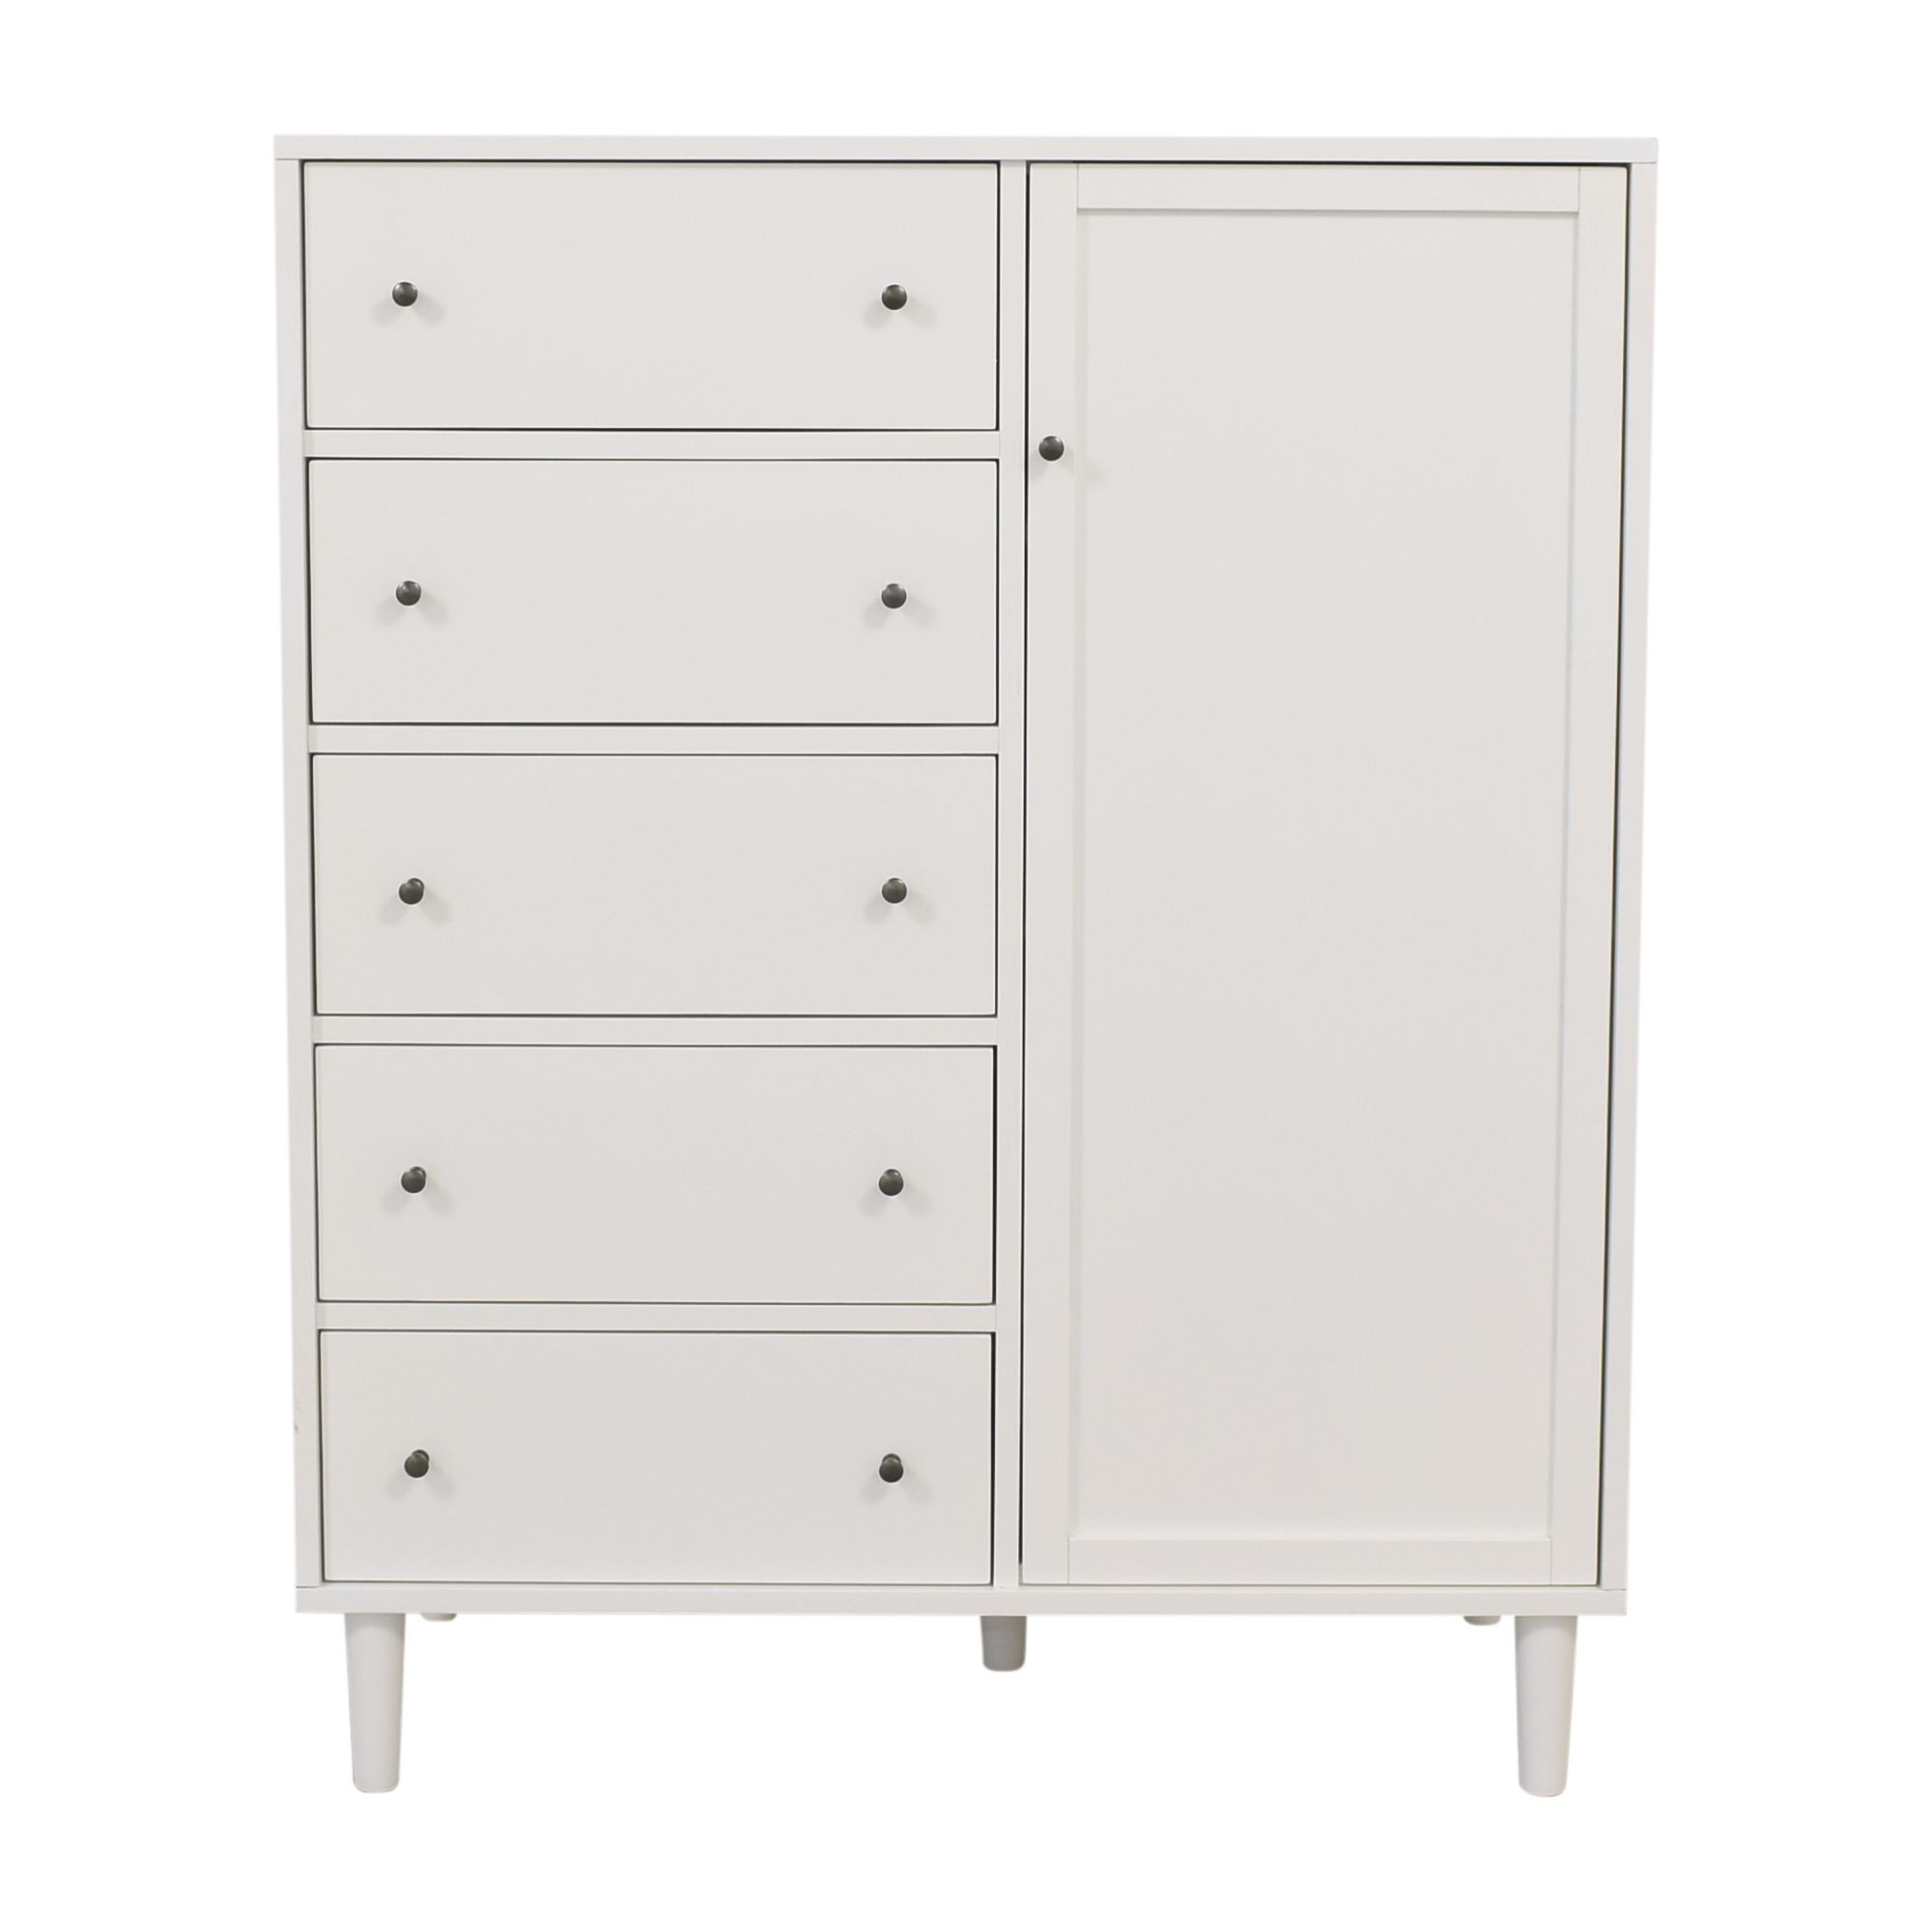 43% OFF - Crate & Barrel Crate & Barrel Barnes Wardrobe ...